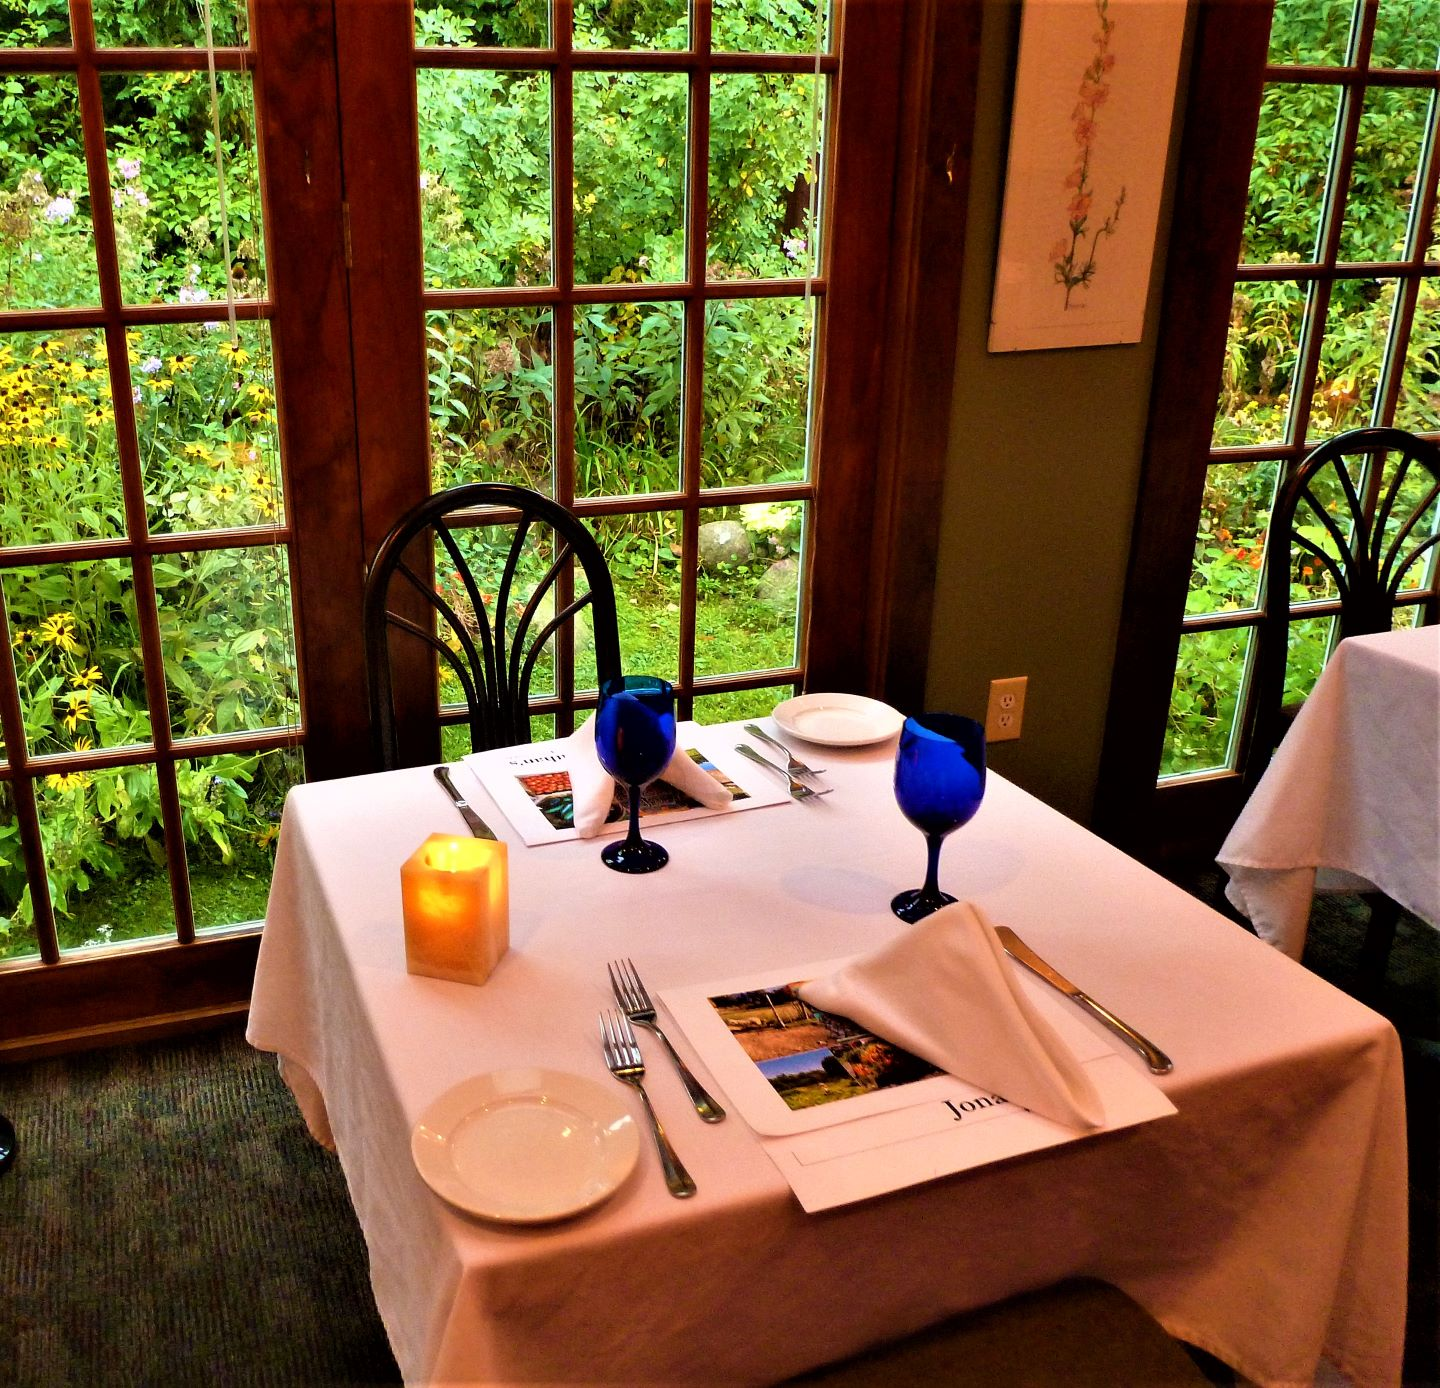 Cozy dining at Jonathan's Restaurant in Ogunquit, Maine.